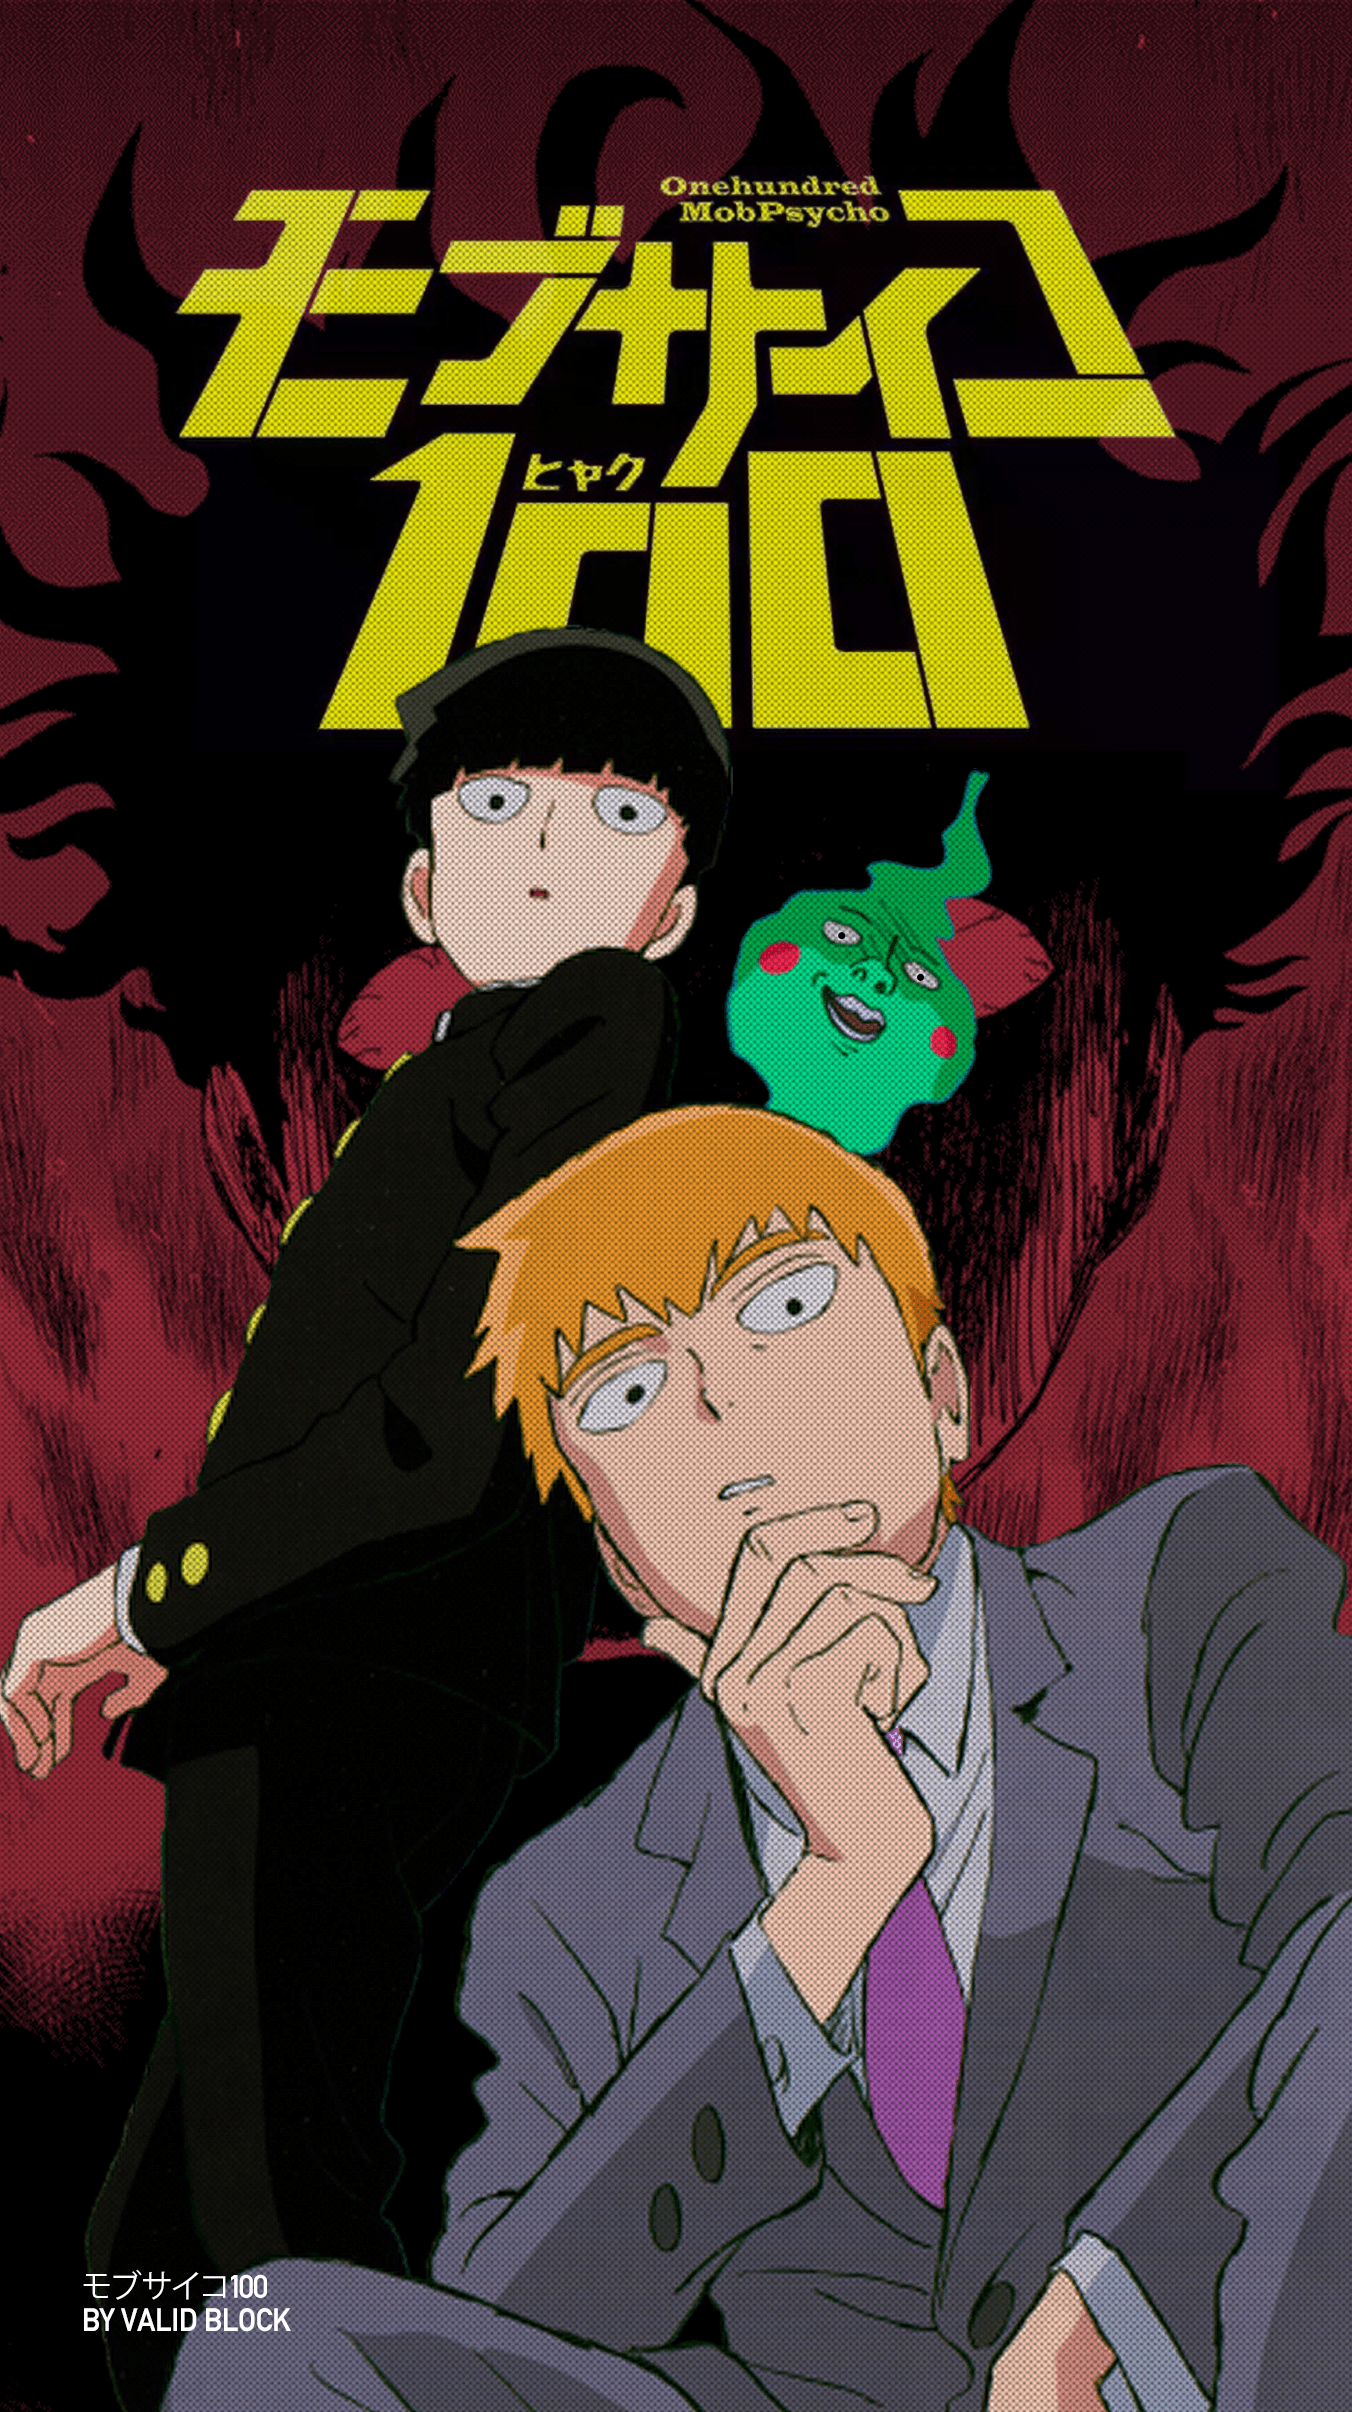 MOB PSYCHO 100 [モブサイコ100] PHONE WALLPAPERS BY